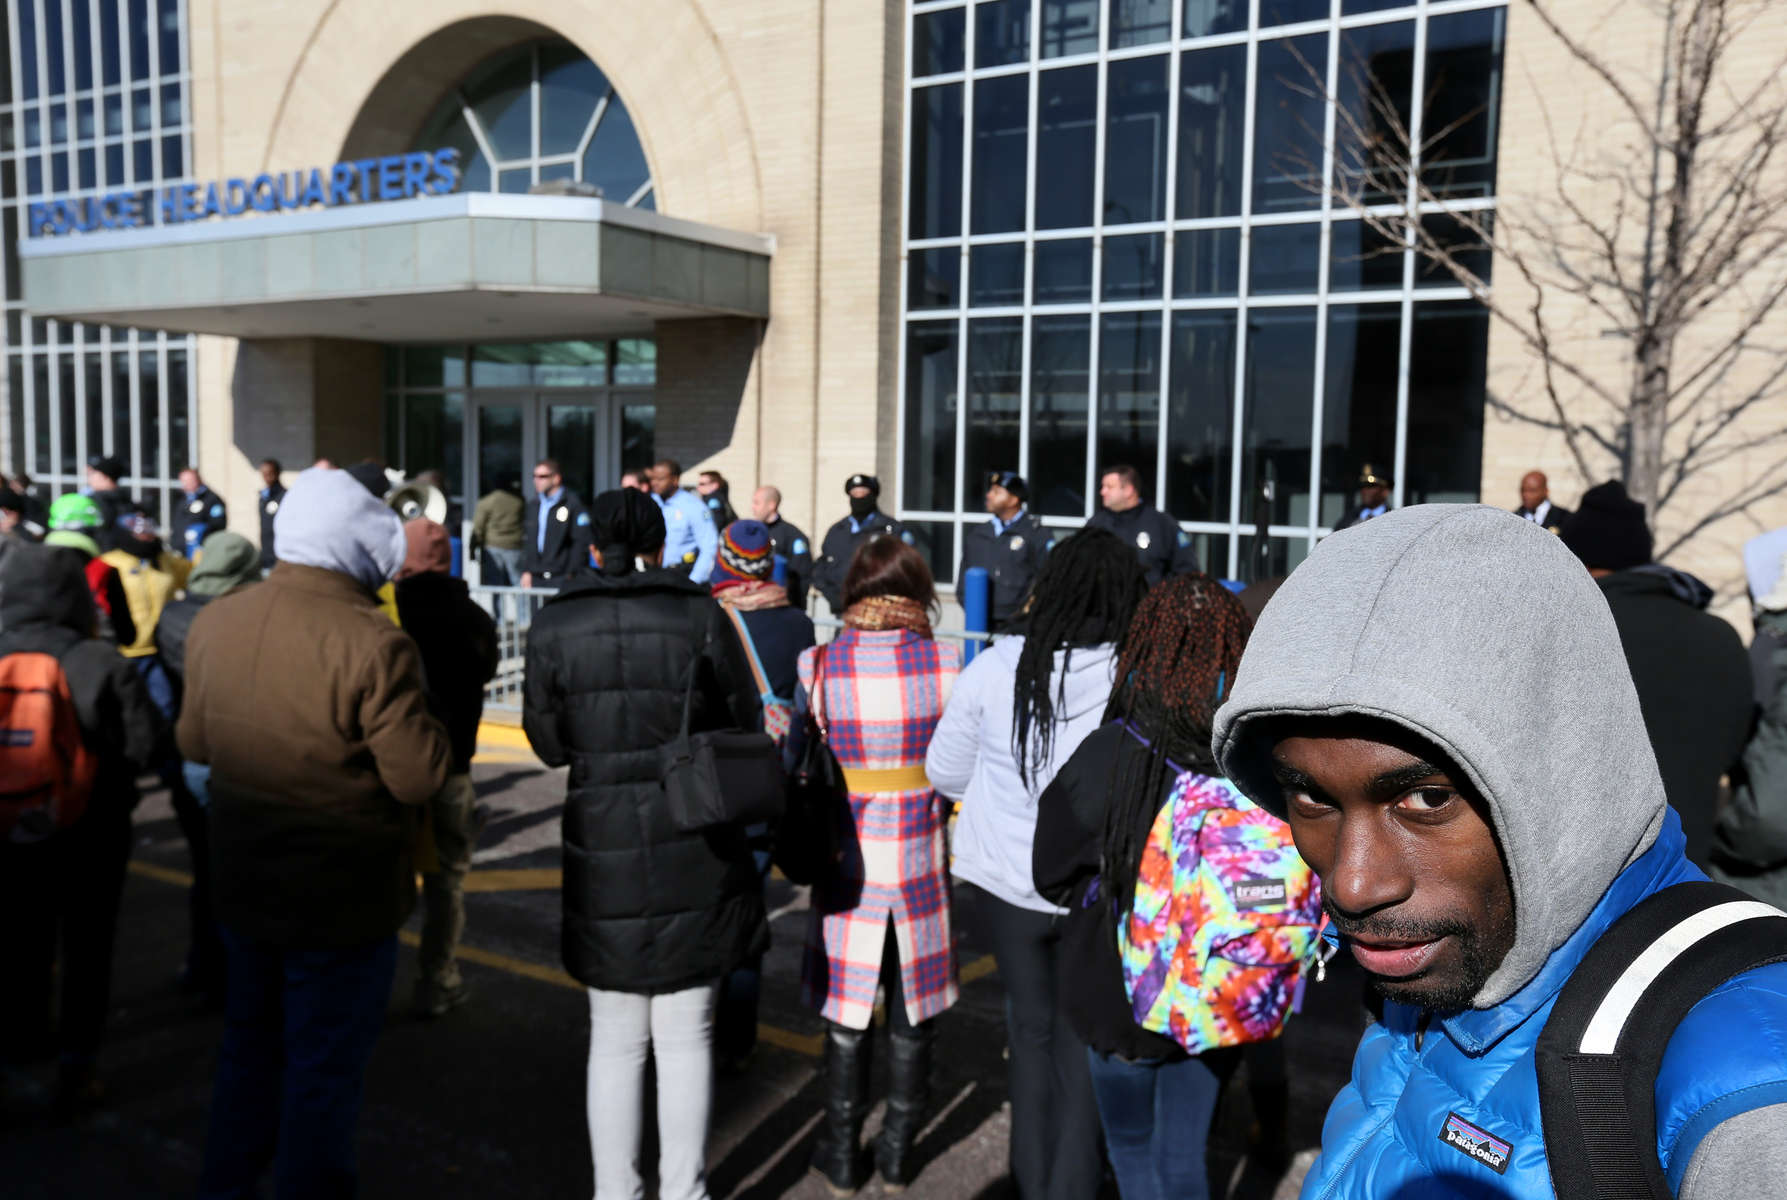 Protest leader Deray McKesson(right) stands in the crowd of protesters as police officers line up protecting the entrance to the St. Louis Police Headquarters after the police pushed out the crowd trying to rush in and occupy the lobby of the station on Wednesday, Dec. 31, 2014.  Photo By David Carson, dcarson@post-dispatch.com